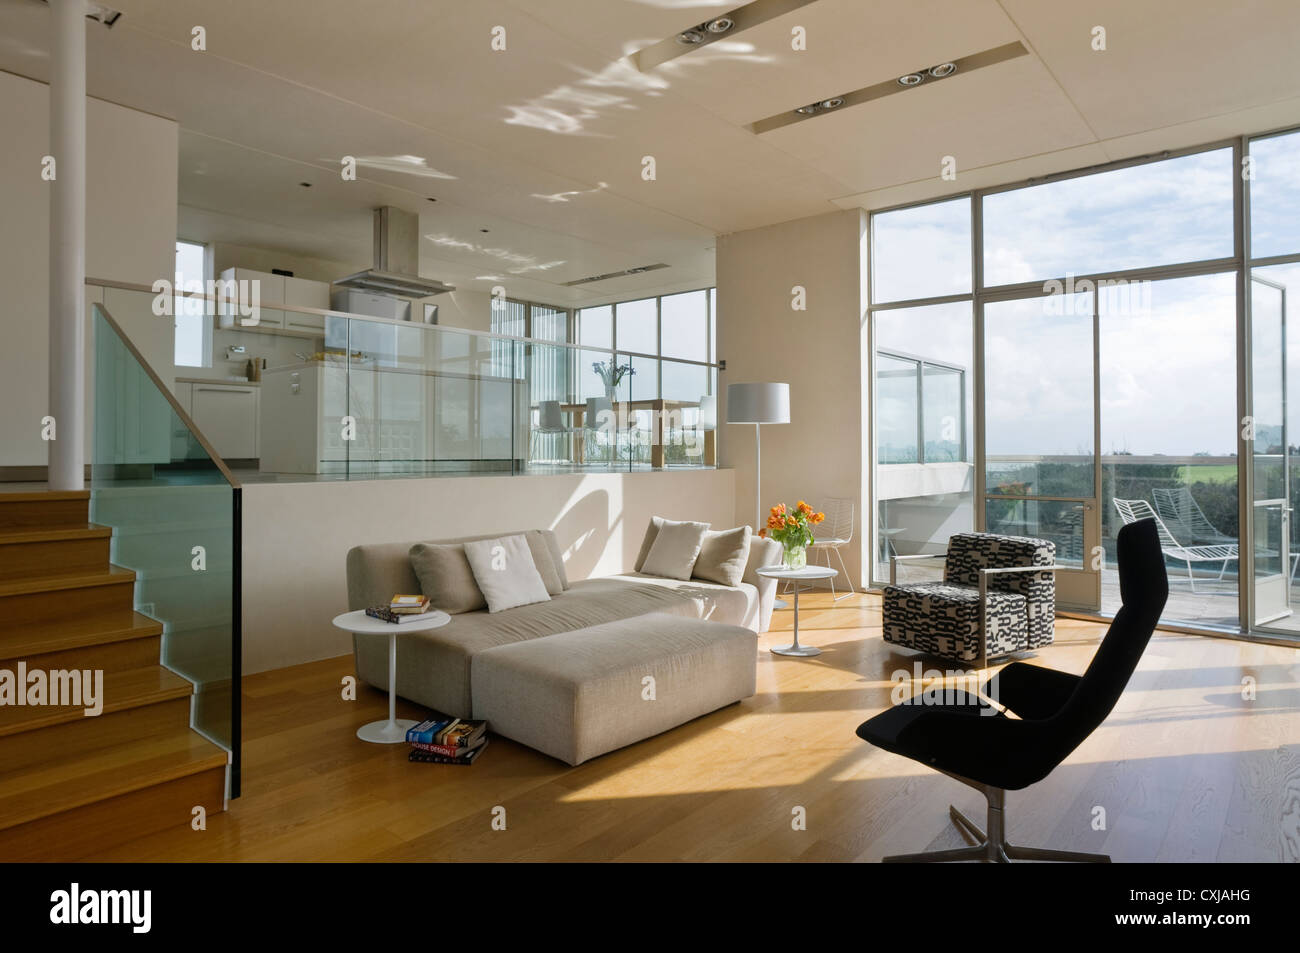 Split-level open plan living room and kitchen Stock Photo: 50805260 ...